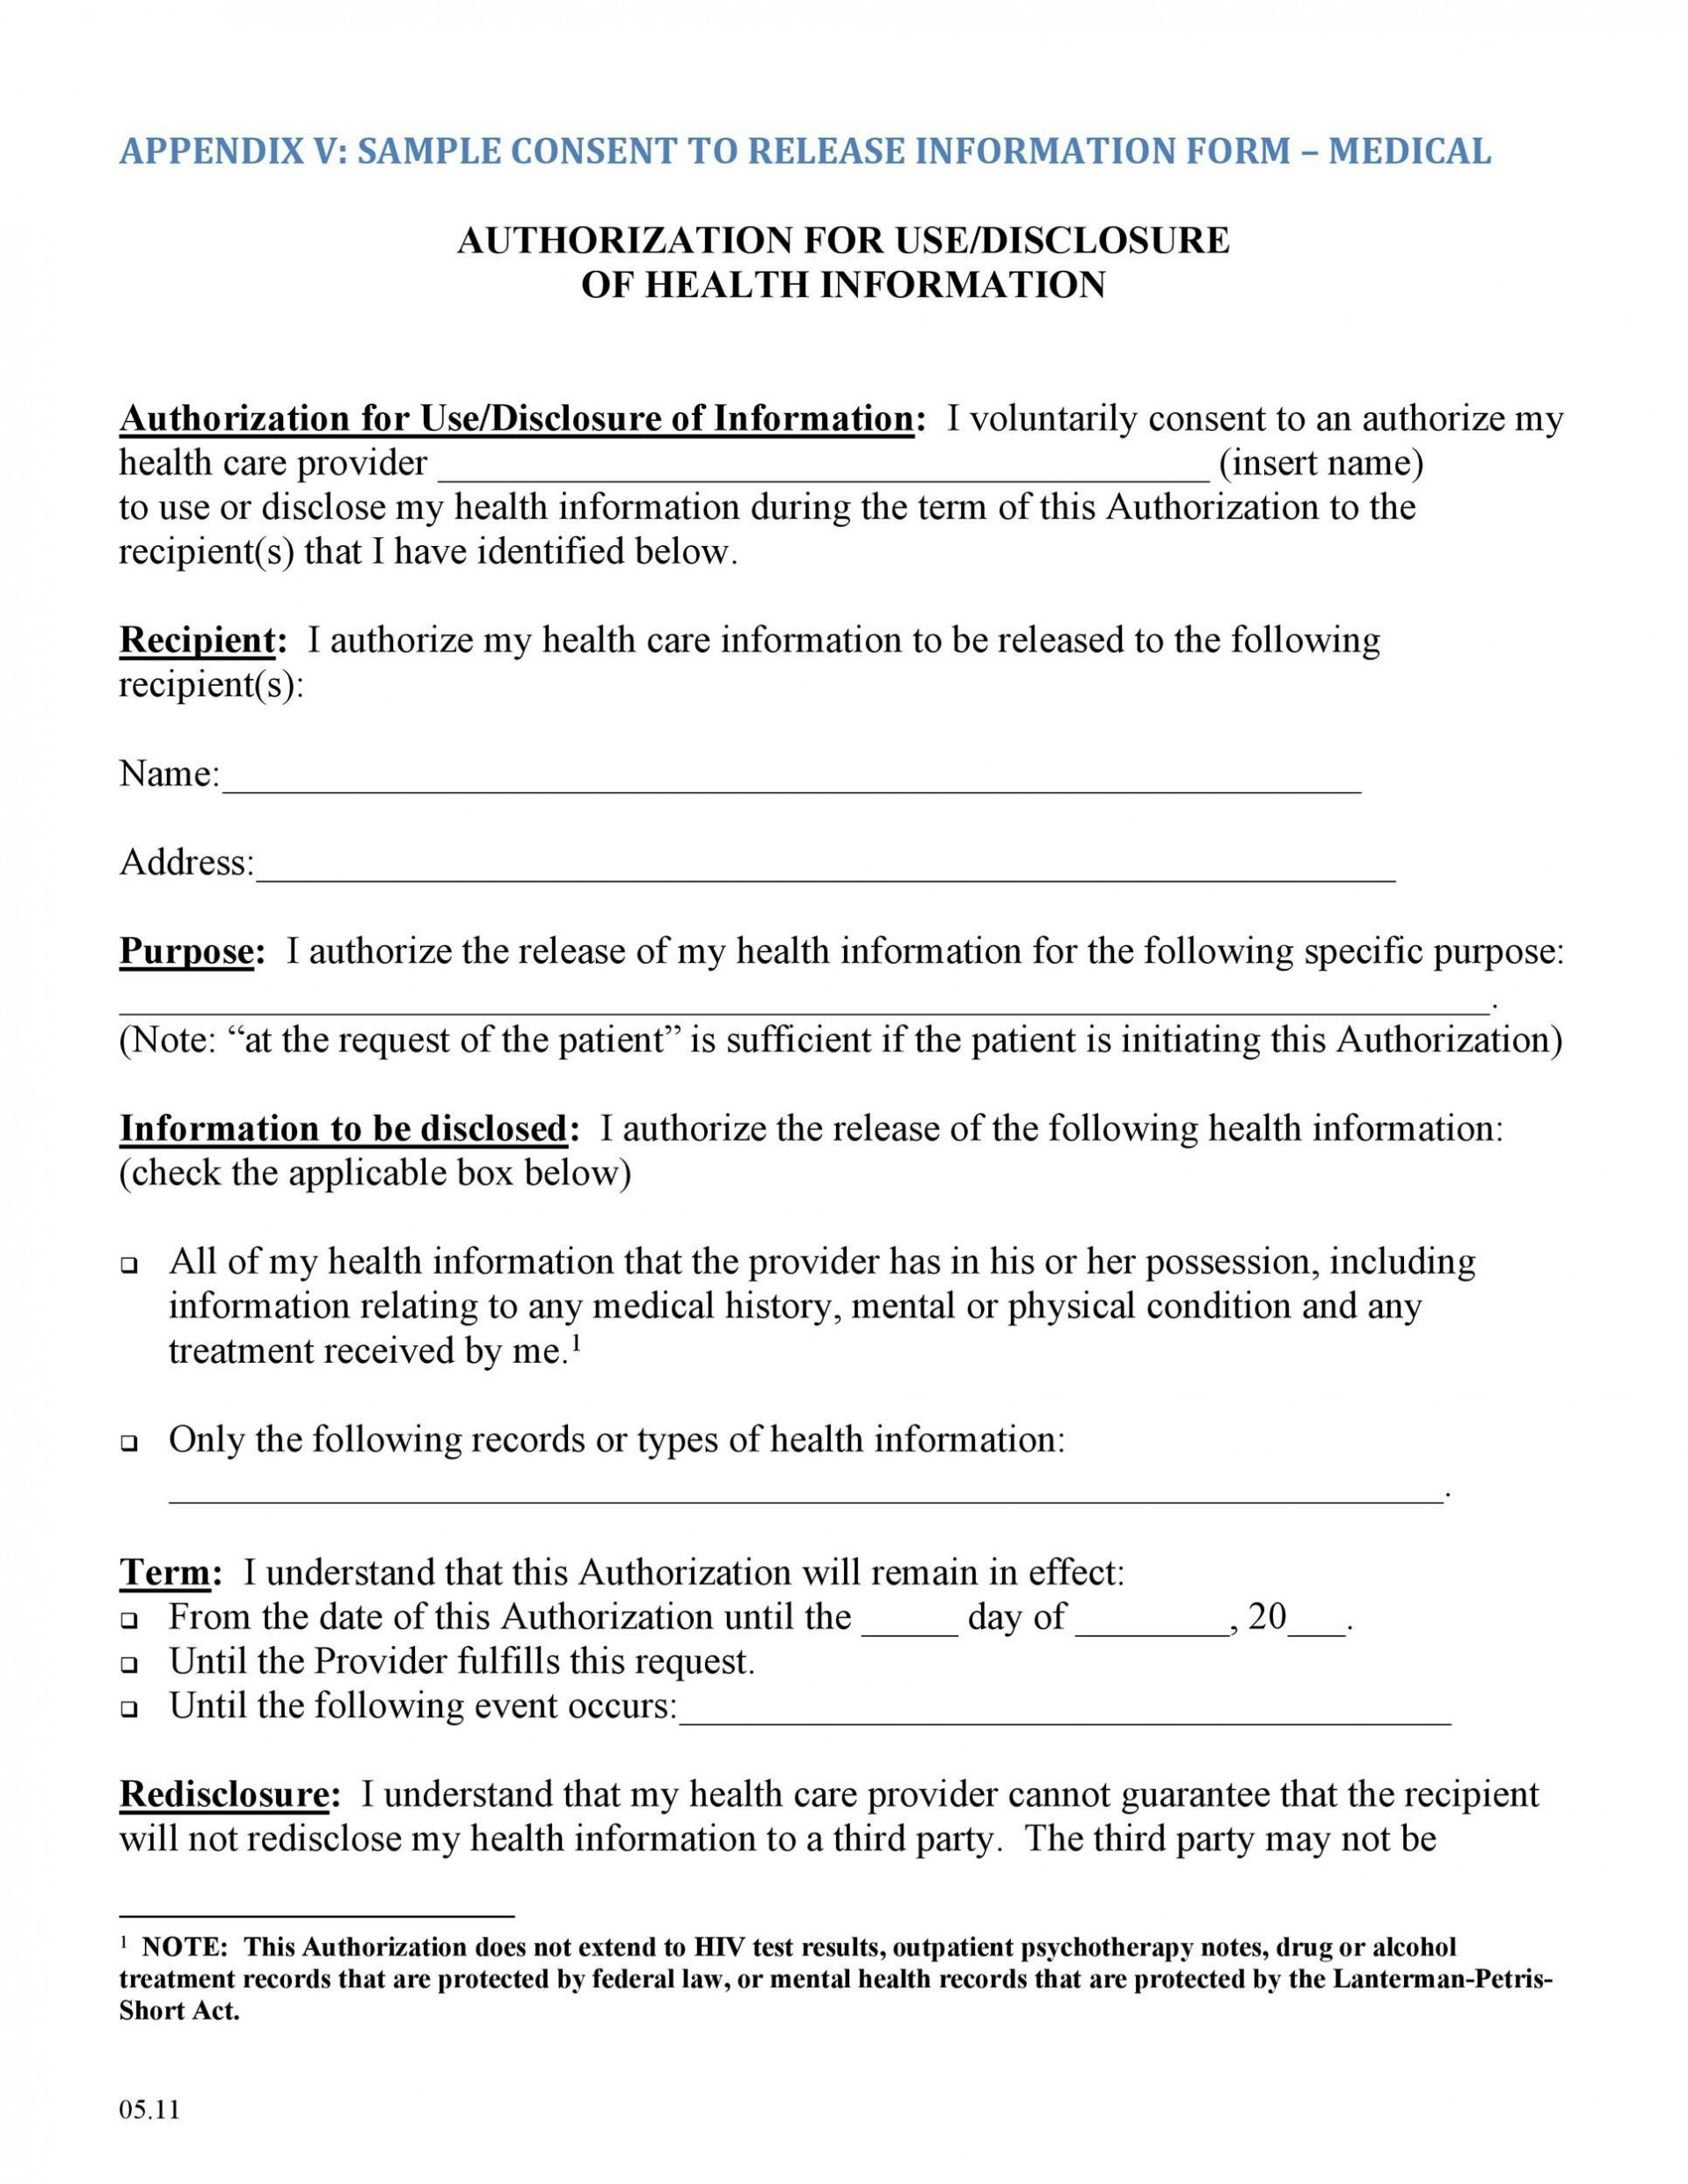 006 Breathtaking Medical Record Release Form Template Photo  Request Free Personal1920